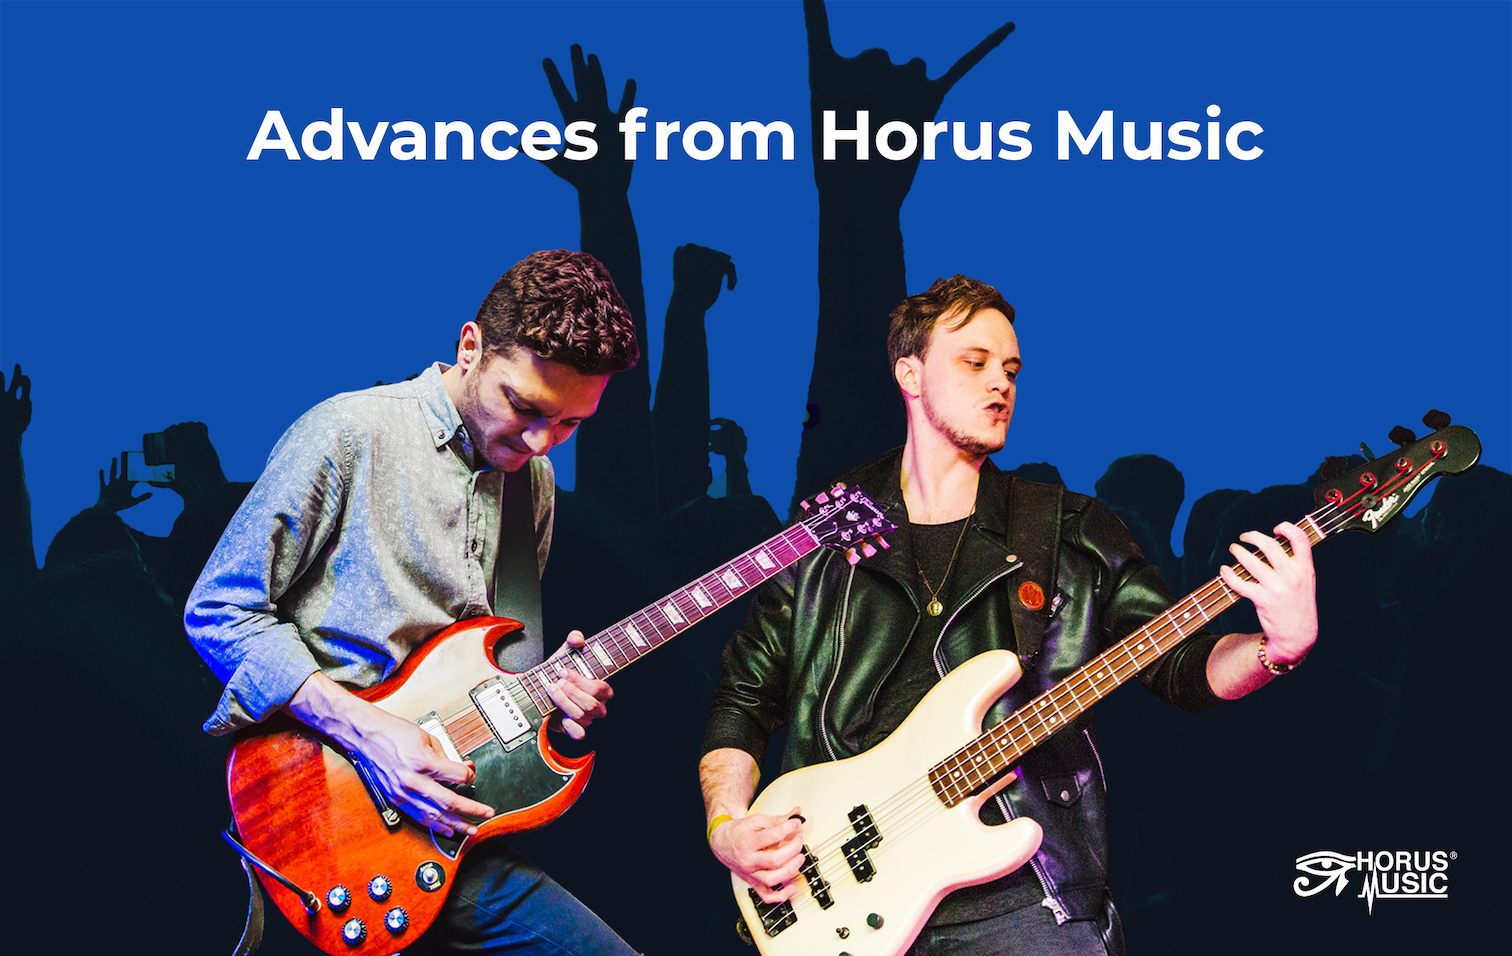 HORUS MUSIC'S ADVANCES FOR INDEPENDENT ARTISTS